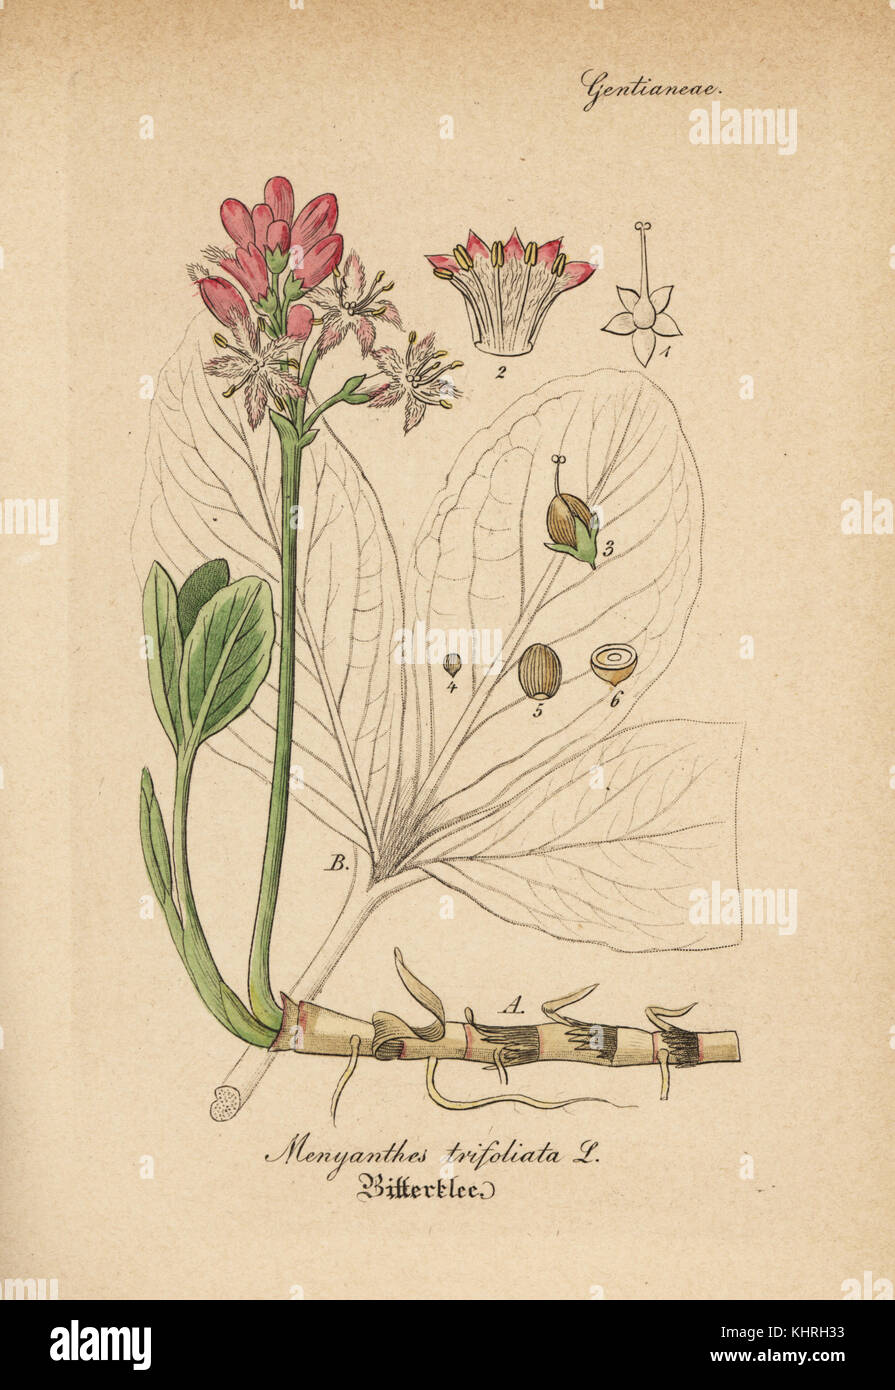 Buckbean or bogbean, Menyanthes trifoliata. Handcoloured copperplate engraving from Dr. Willibald Artus' Hand - Stock Image